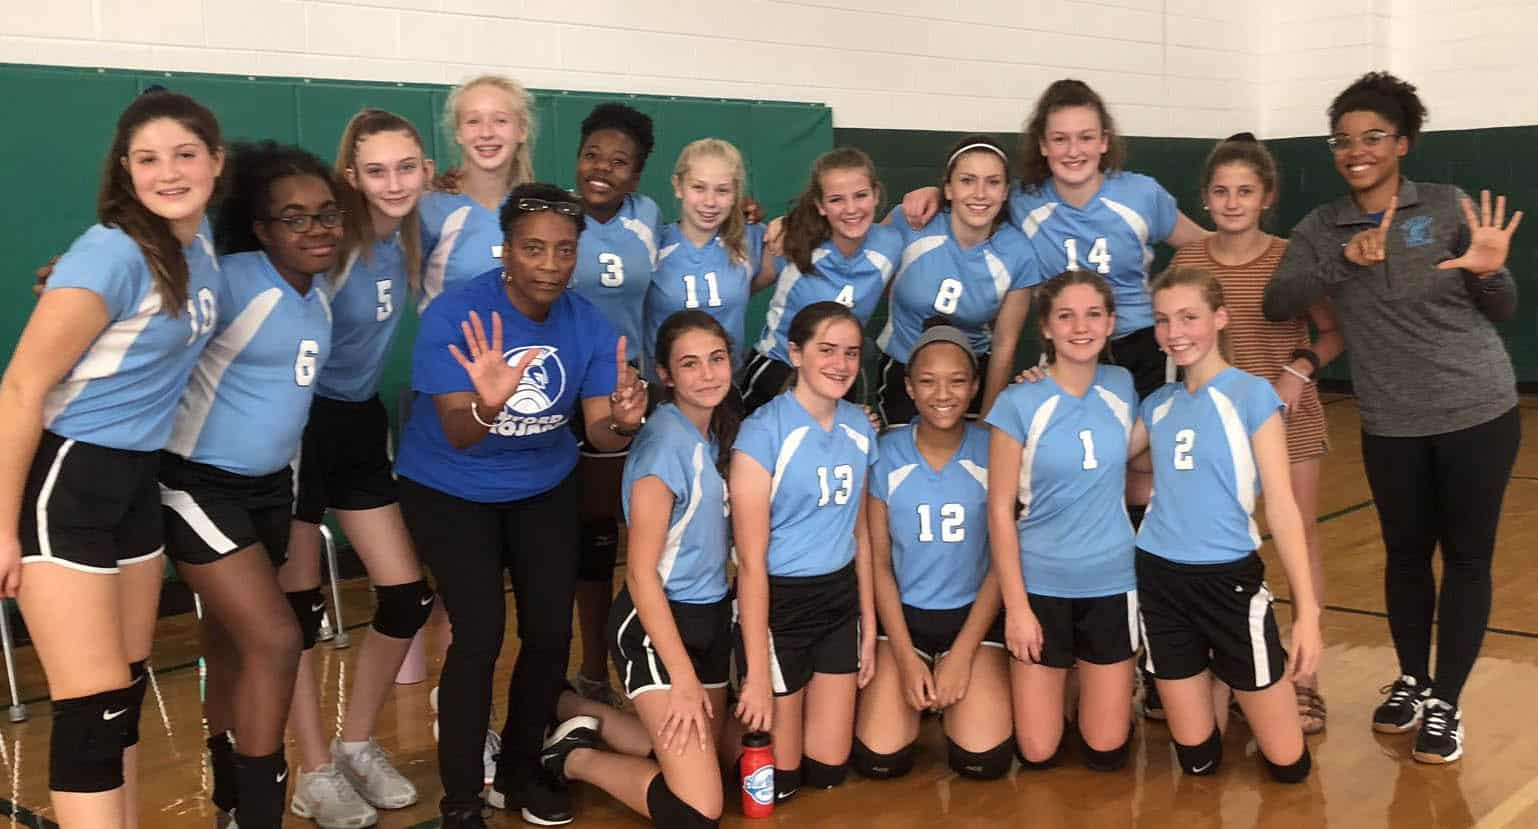 Buford volleyball team has a record of 13-2!